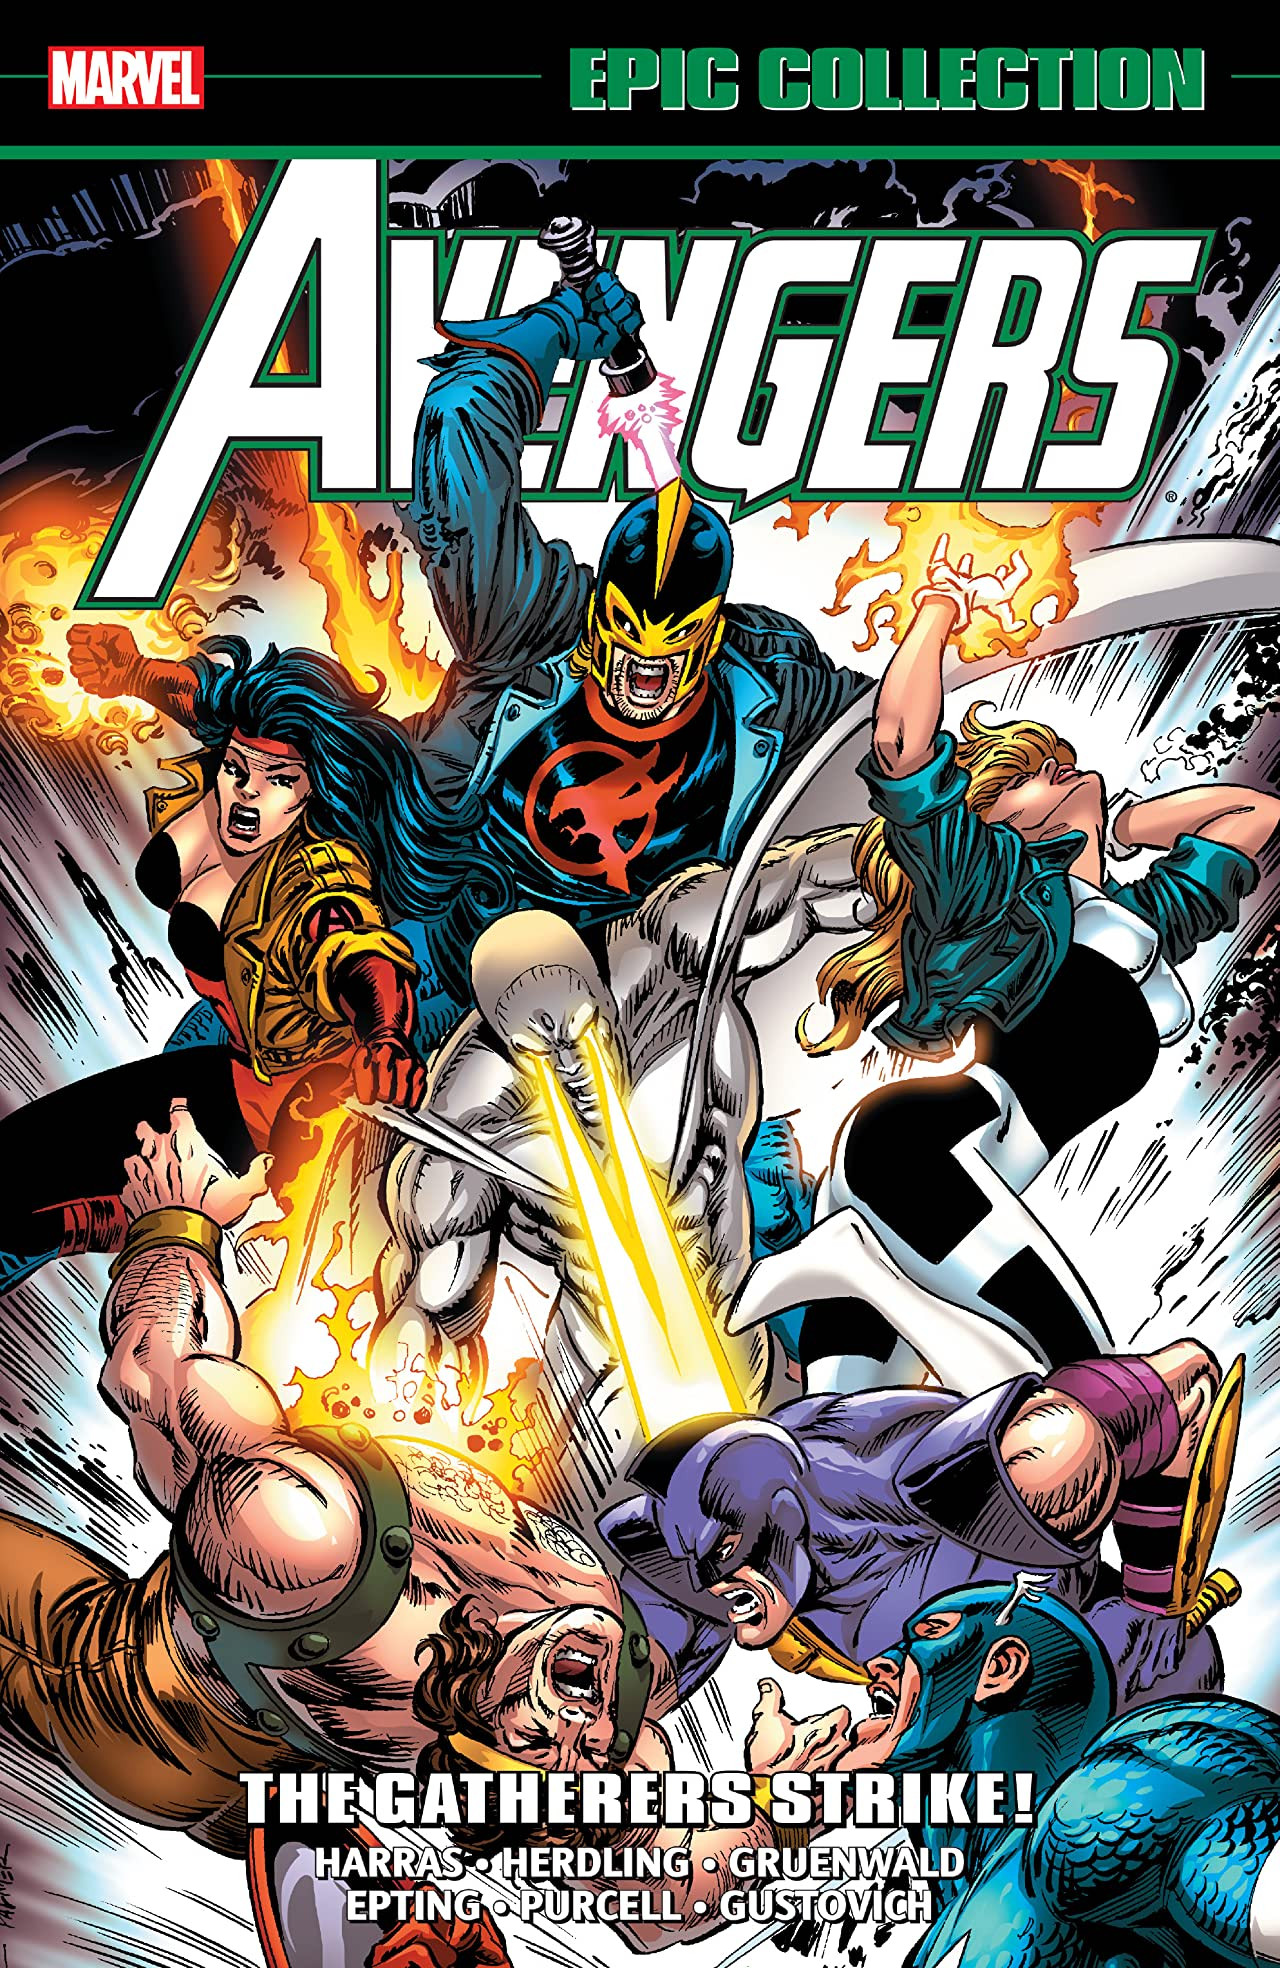 Epic Collection: Avengers Vol 1 24